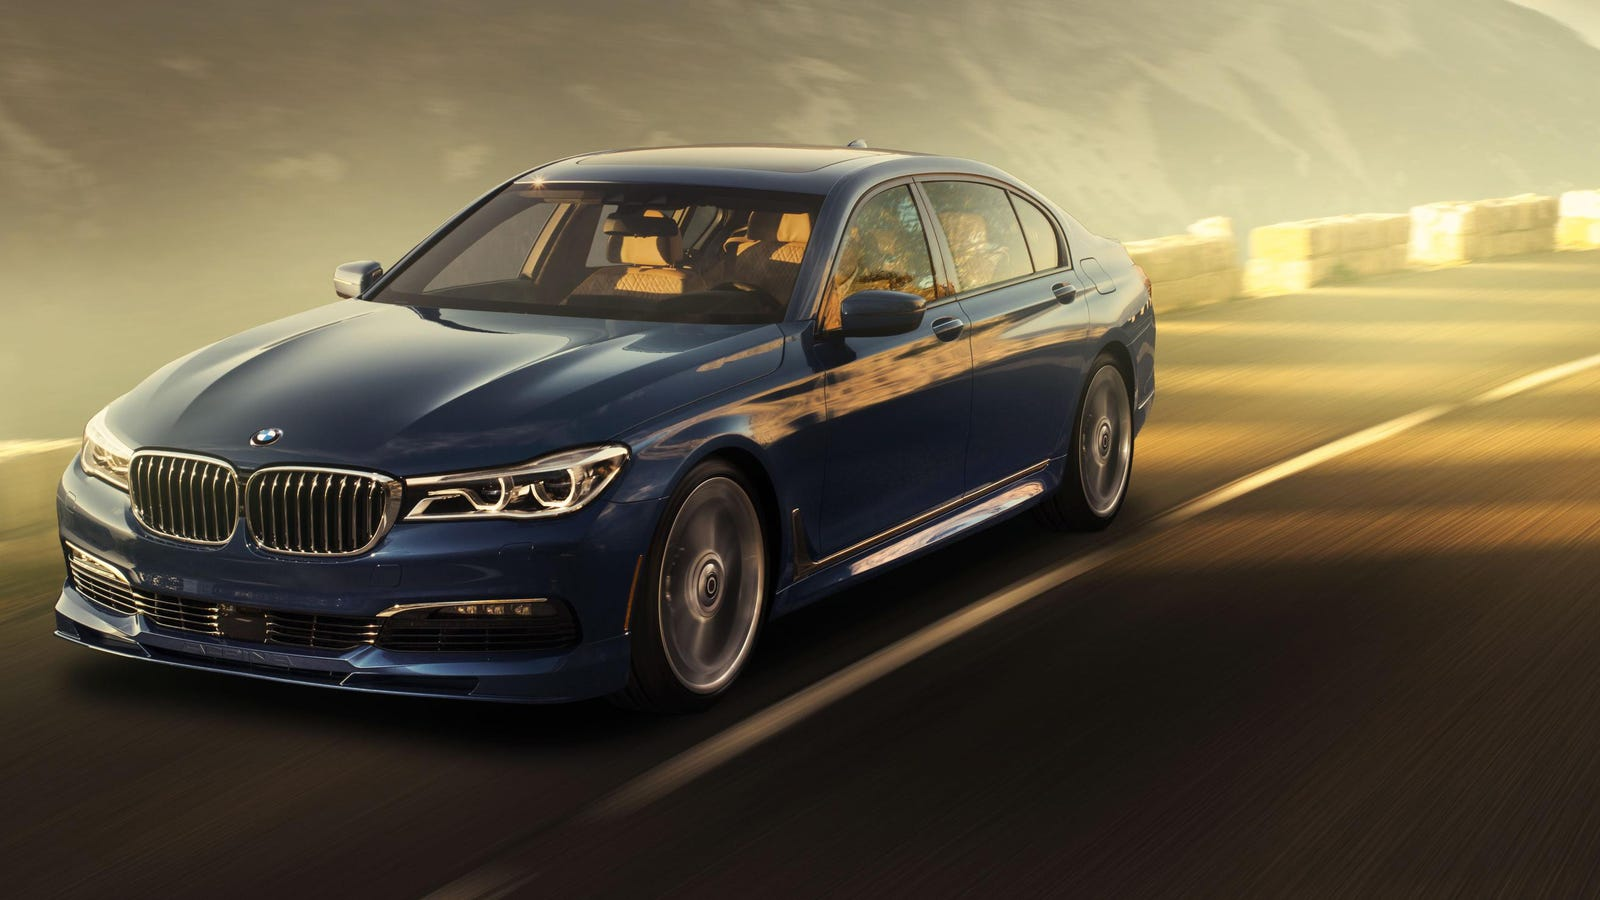 The 2017 Alpina B7 Is Your 600 Horsepower M7 BMW Doesnt Have To Make Now